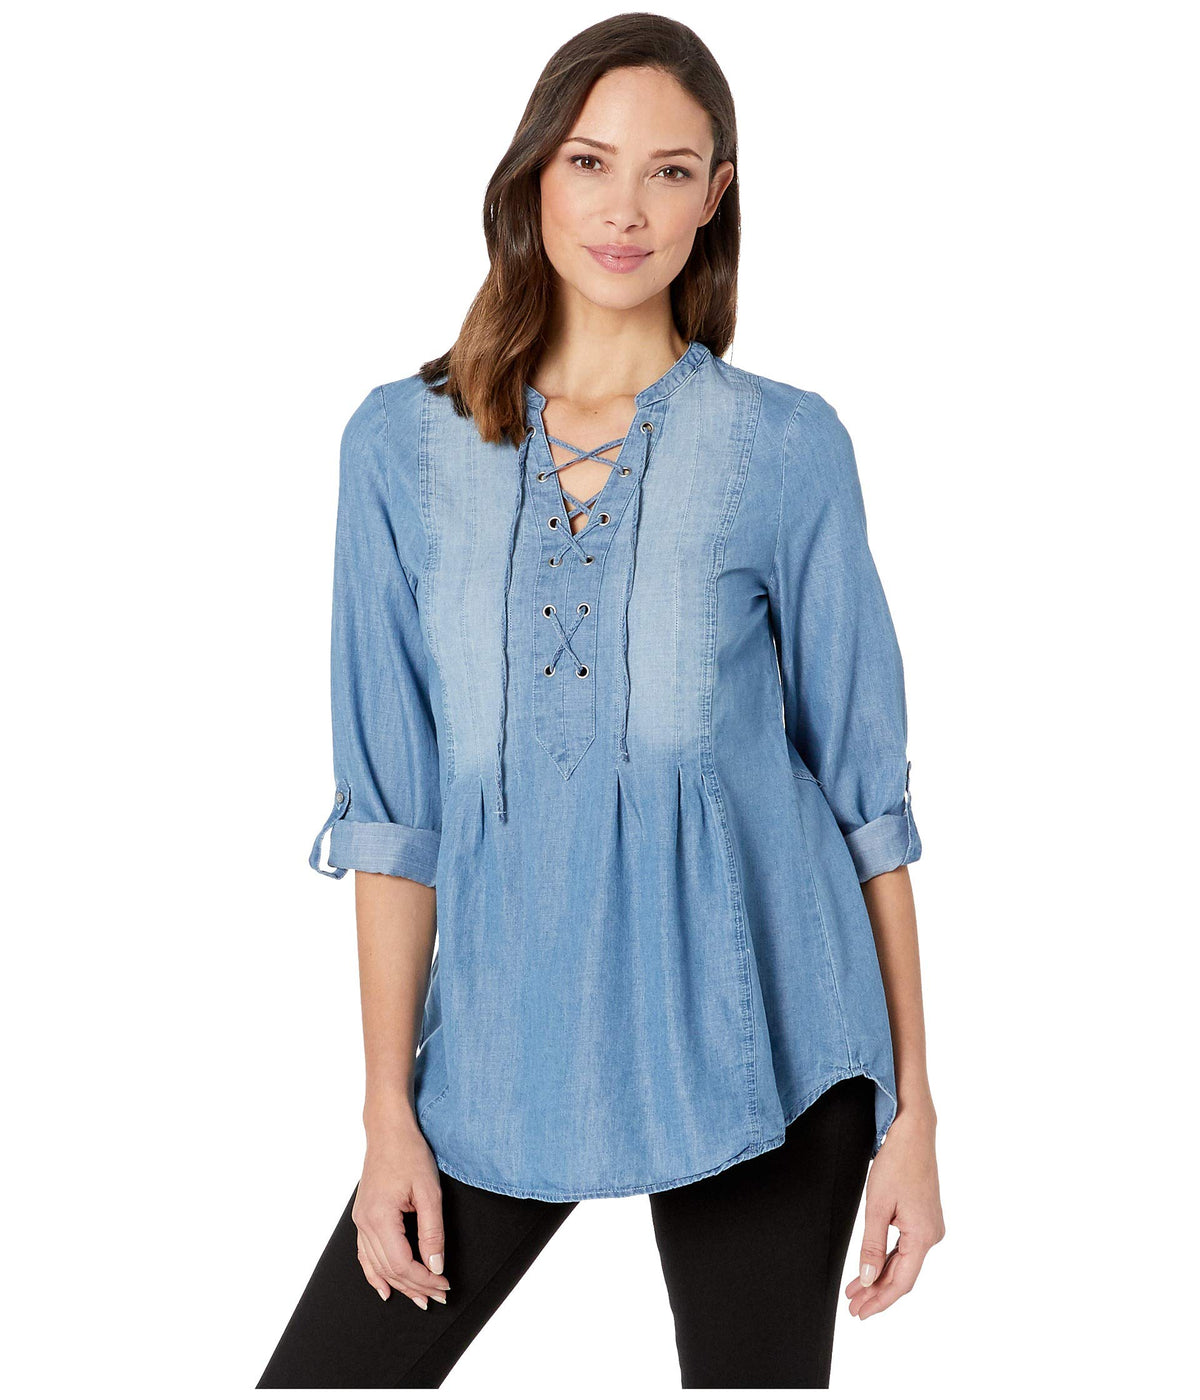 Lace-Up Top w/ Roll Tab Sleeves